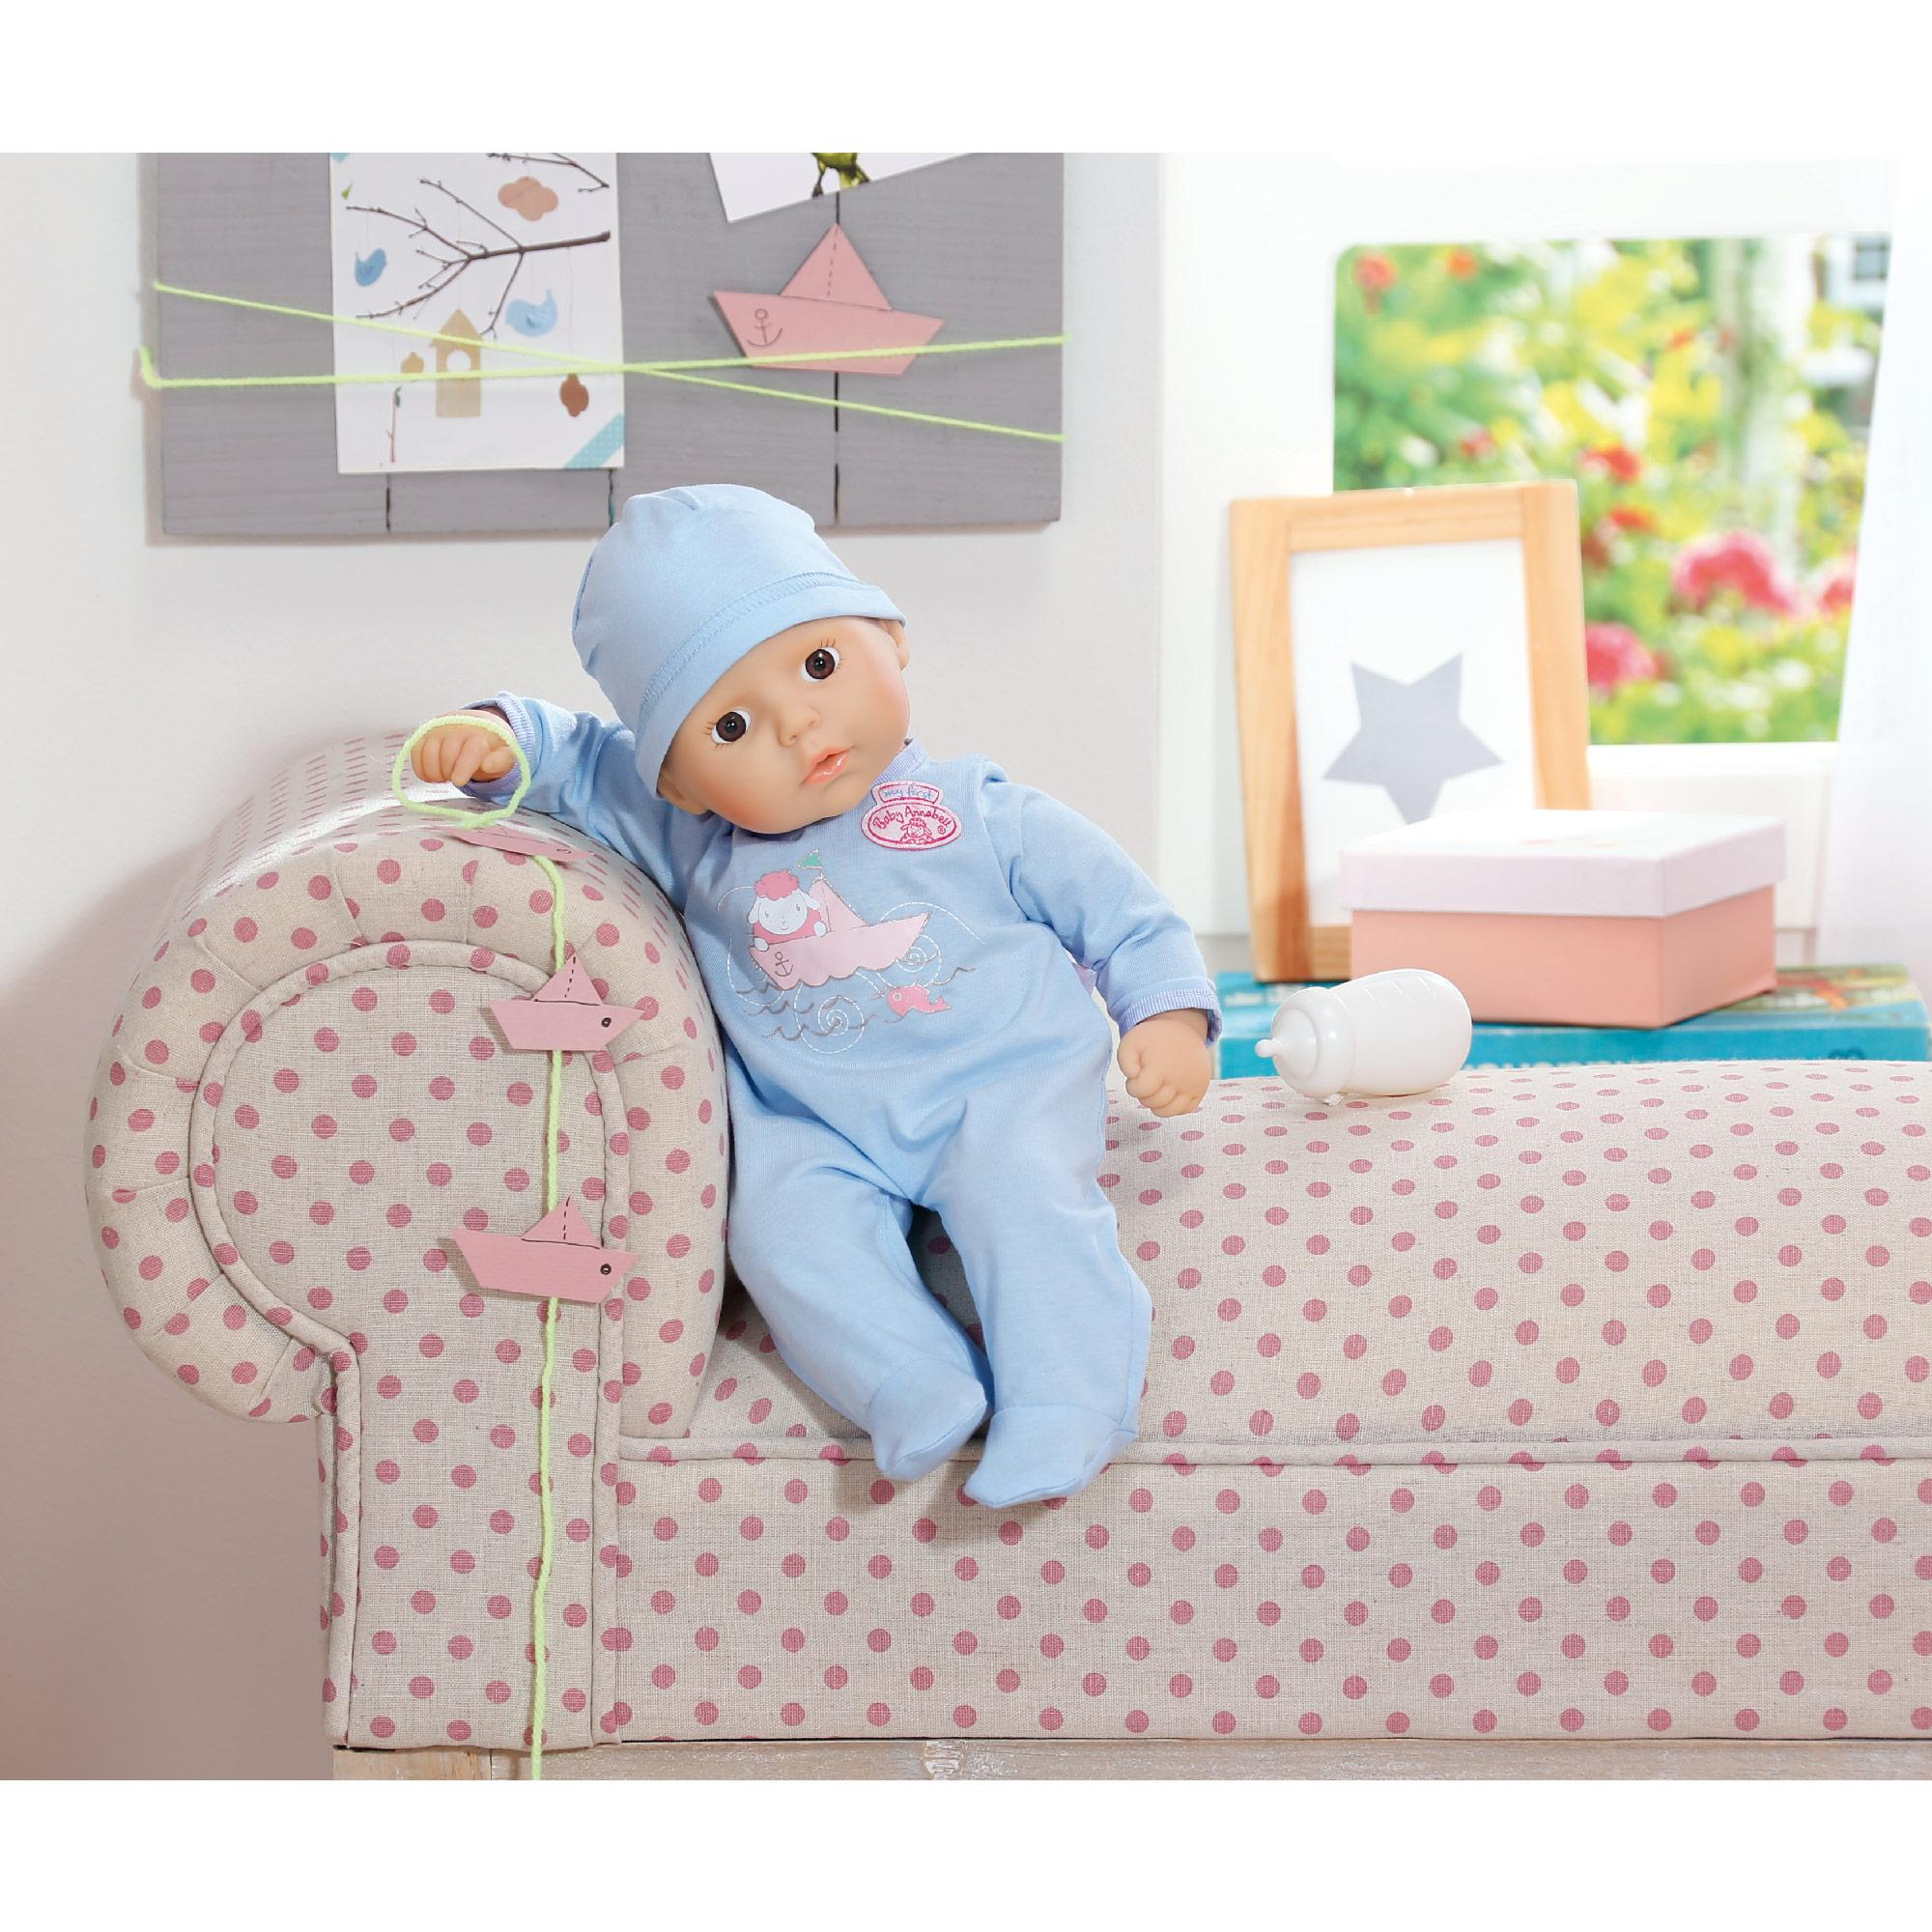 Review | Baby Annabell Little Brother doll